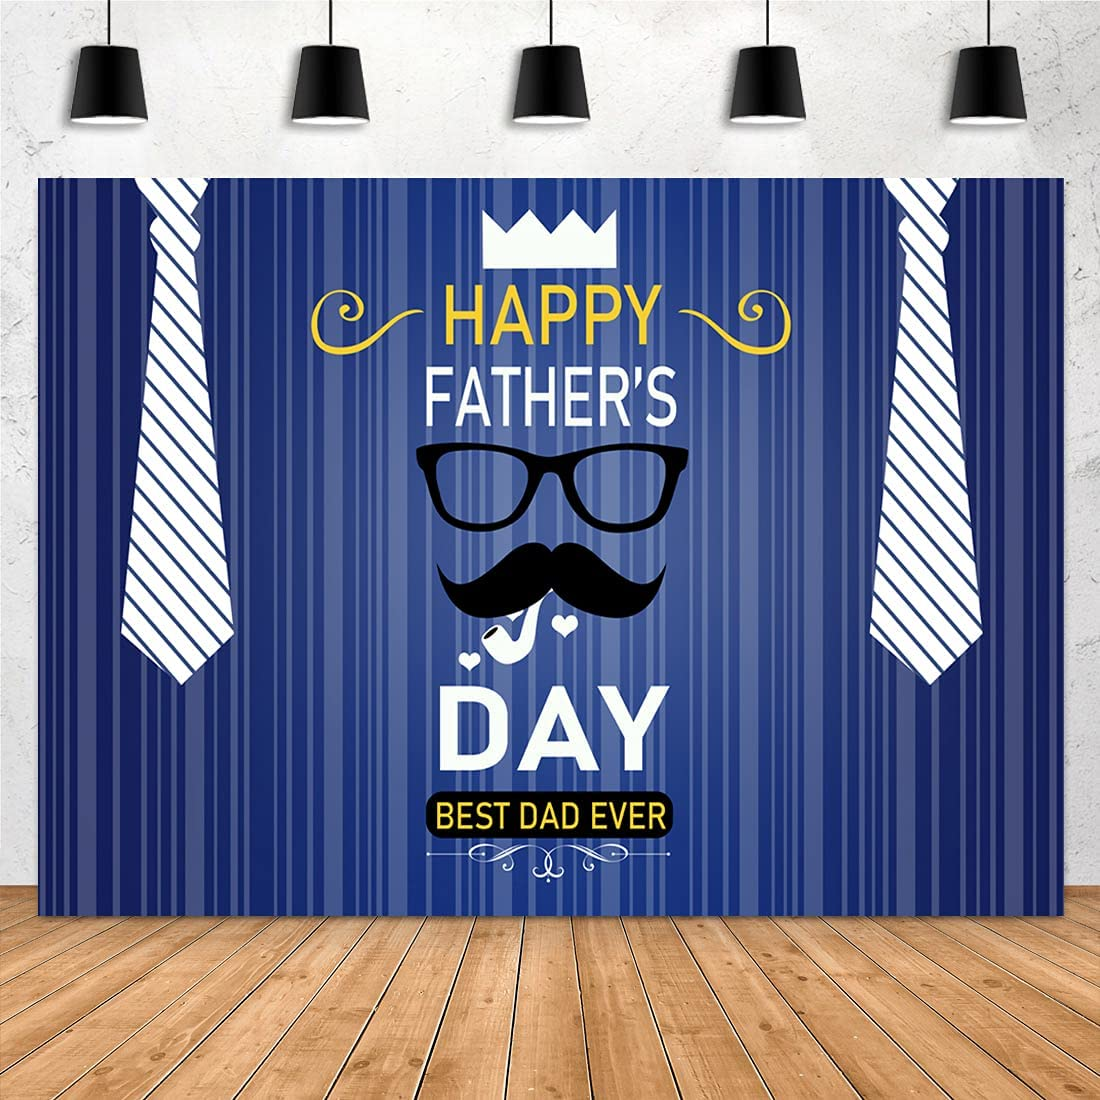 Aperturee 7x5ft Happy Father's Day Backdrop Bearded Blue Striped White Tie Royal Crown Portrait Photography Background Thanks Dad Family Props Photo Studio Booth Party Decorations Banner Decor